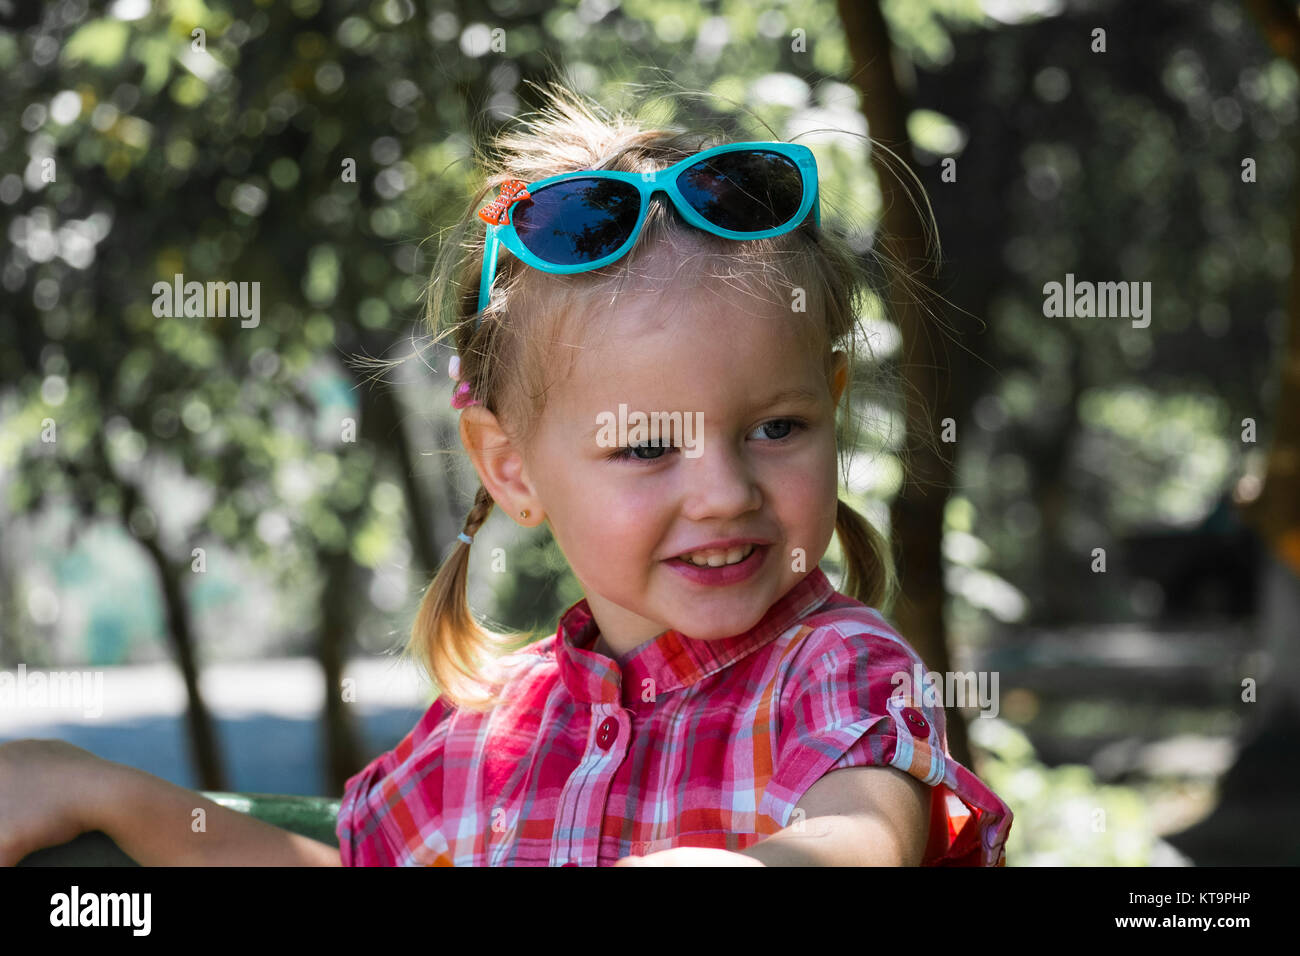 0151a6428 Happy little girl with a funny smile and turquoise sunglasses on her head -  Stock Image